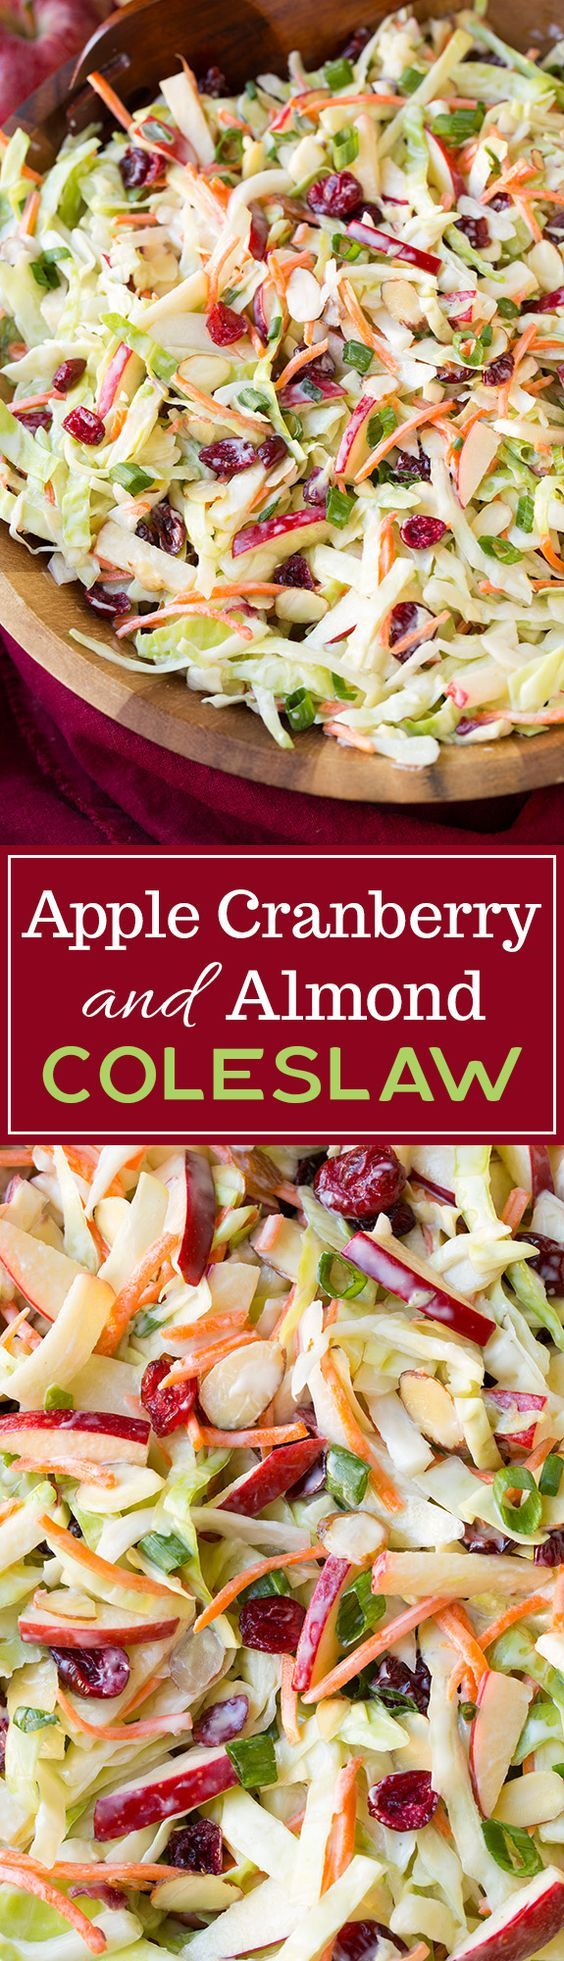 Apple Cranberry Almond Coleslaw - love that it uses mostly Greek yogurt instead of mayo! Easy, healthy, delicious!: